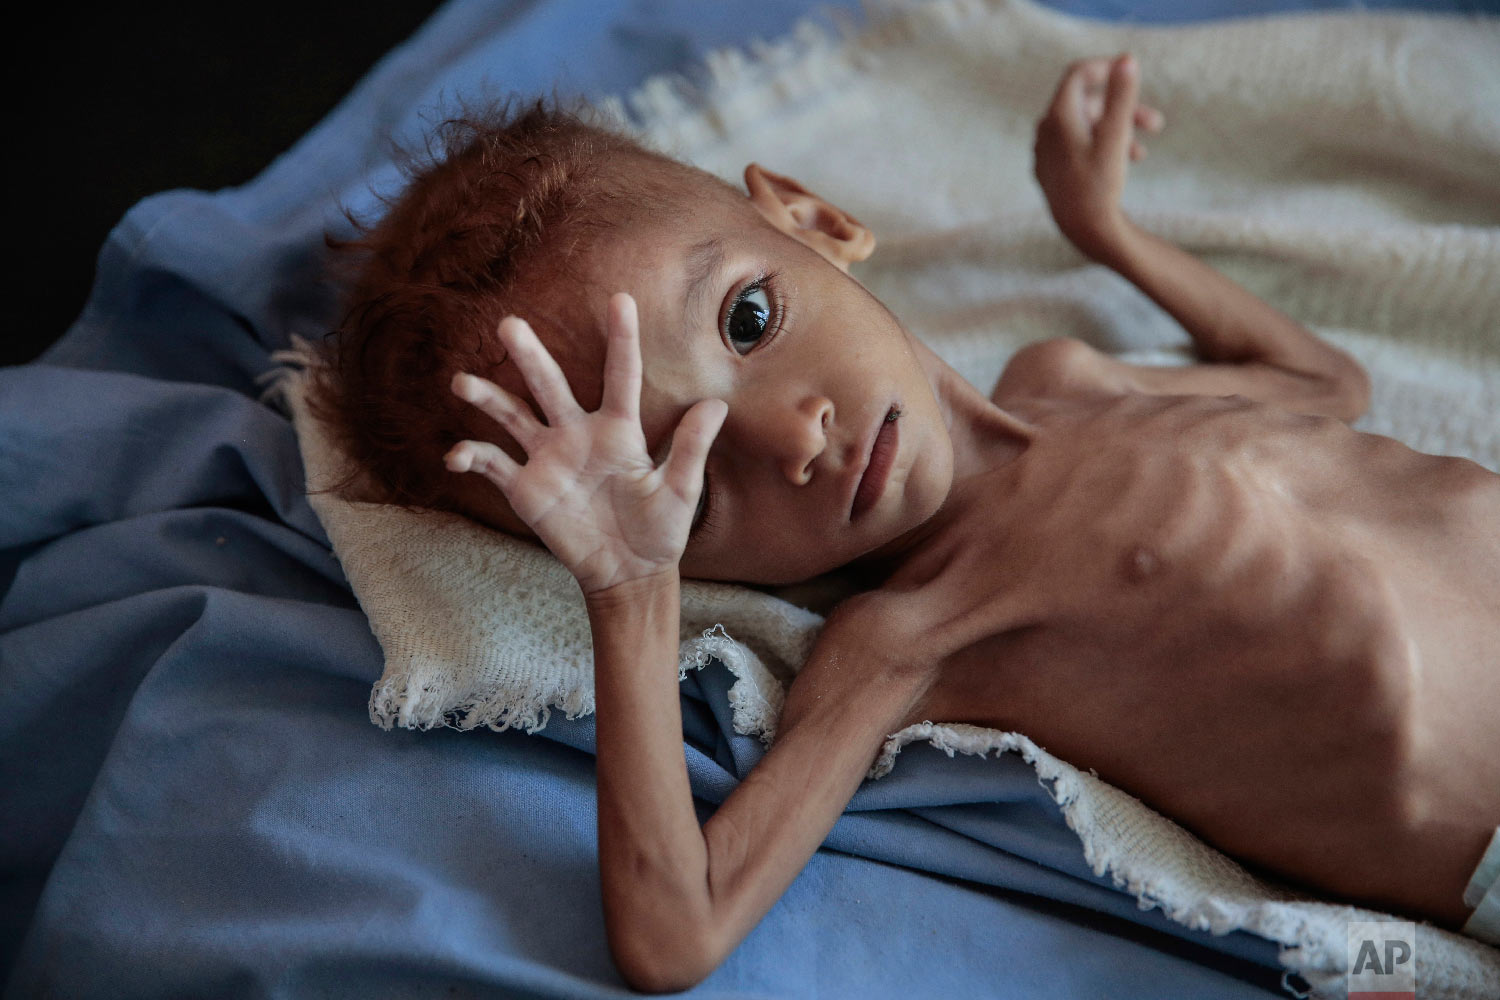 A severely malnourished boy rests on a hospital bed at the Aslam Health Center, Hajjah, Yemen, Oct. 1, 2018. (AP Photo/Hani Mohammed)